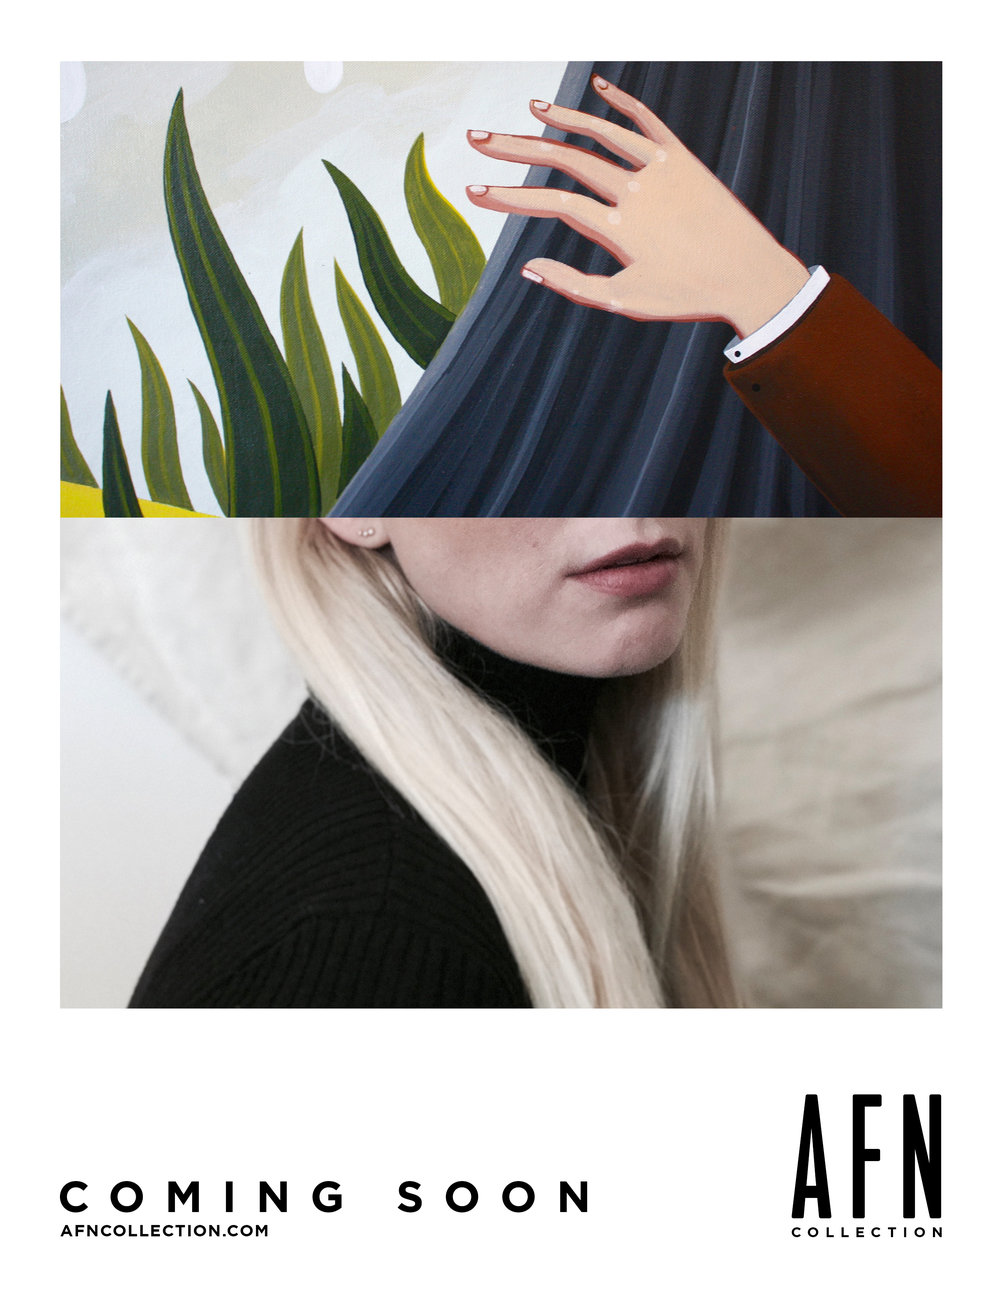 AFN COLLECTION COMING SOON POSTER 1.jpg